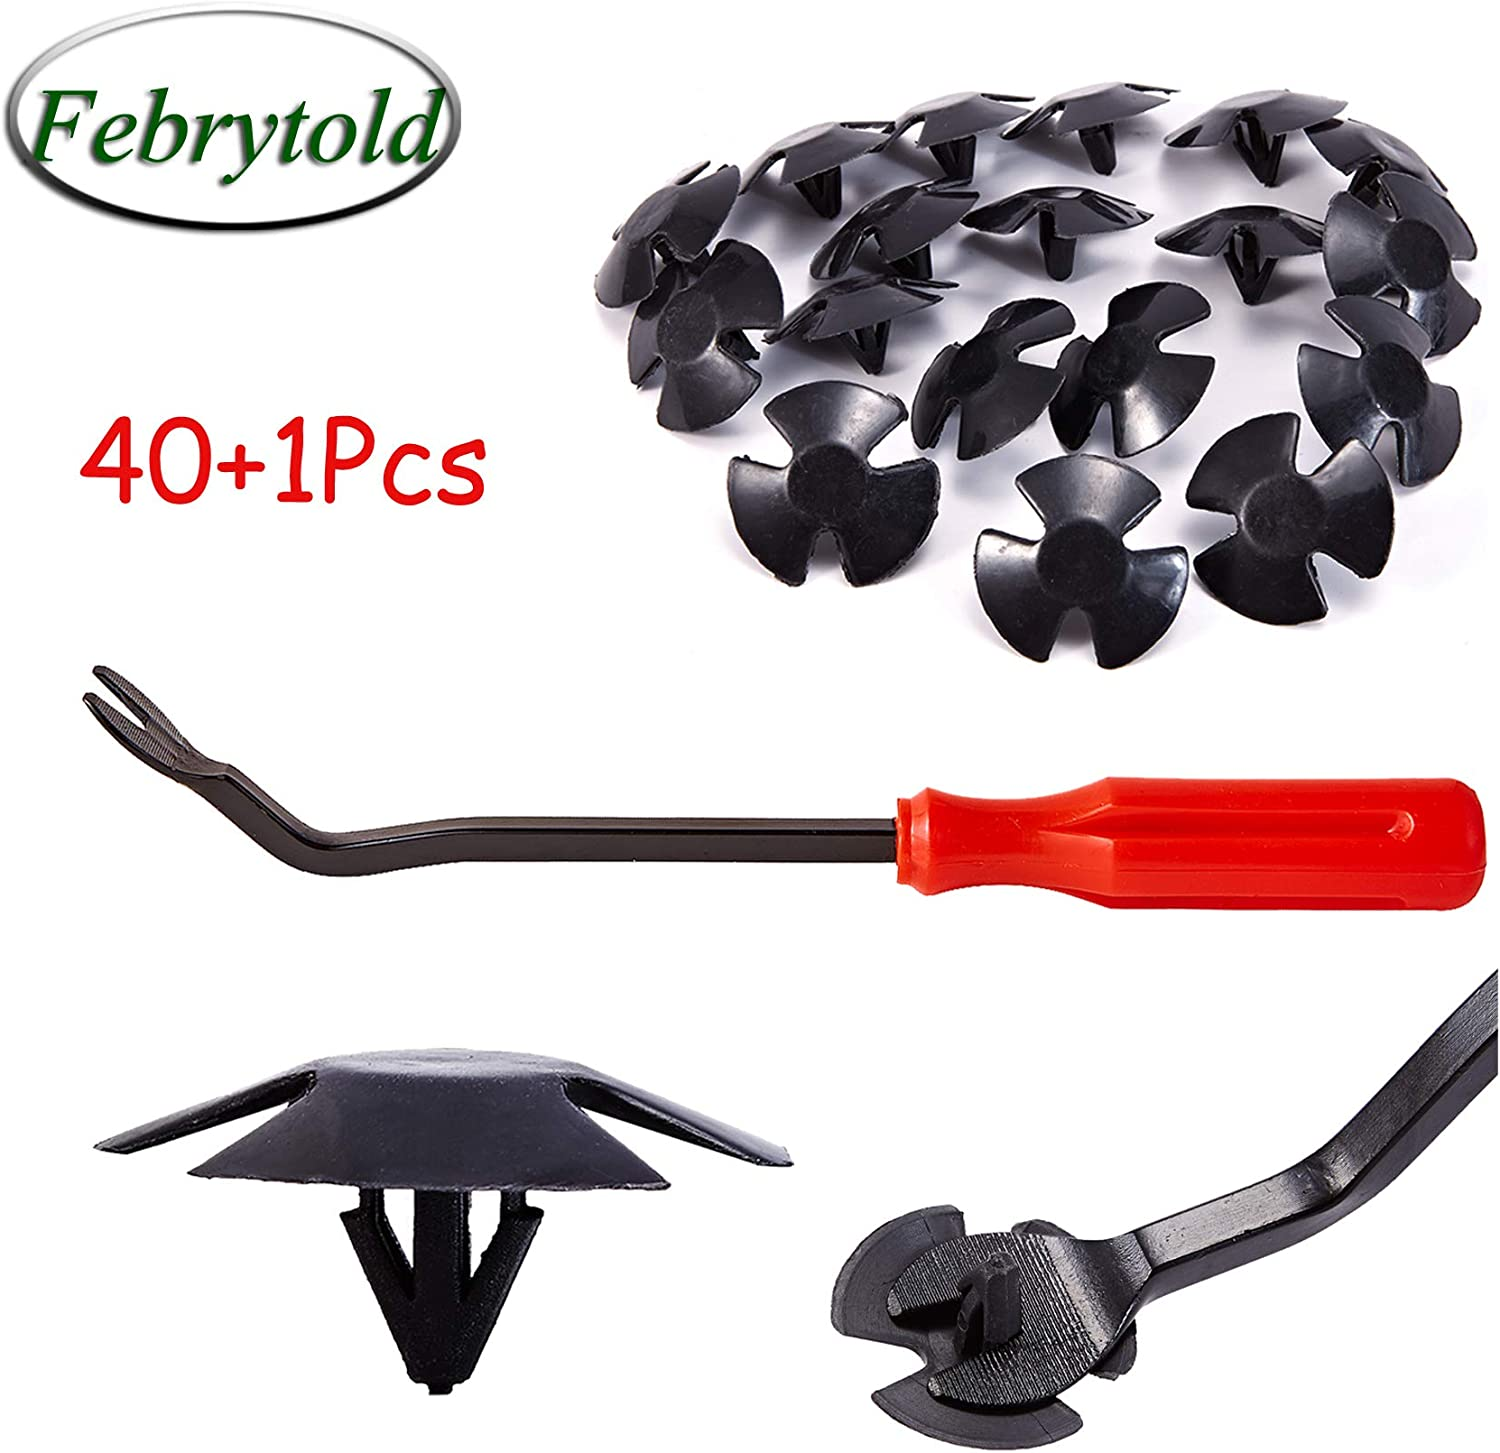 Febrytold Hood National products Insulation Retainer Clips - Insulatio Popular brand in the world Pcs 40